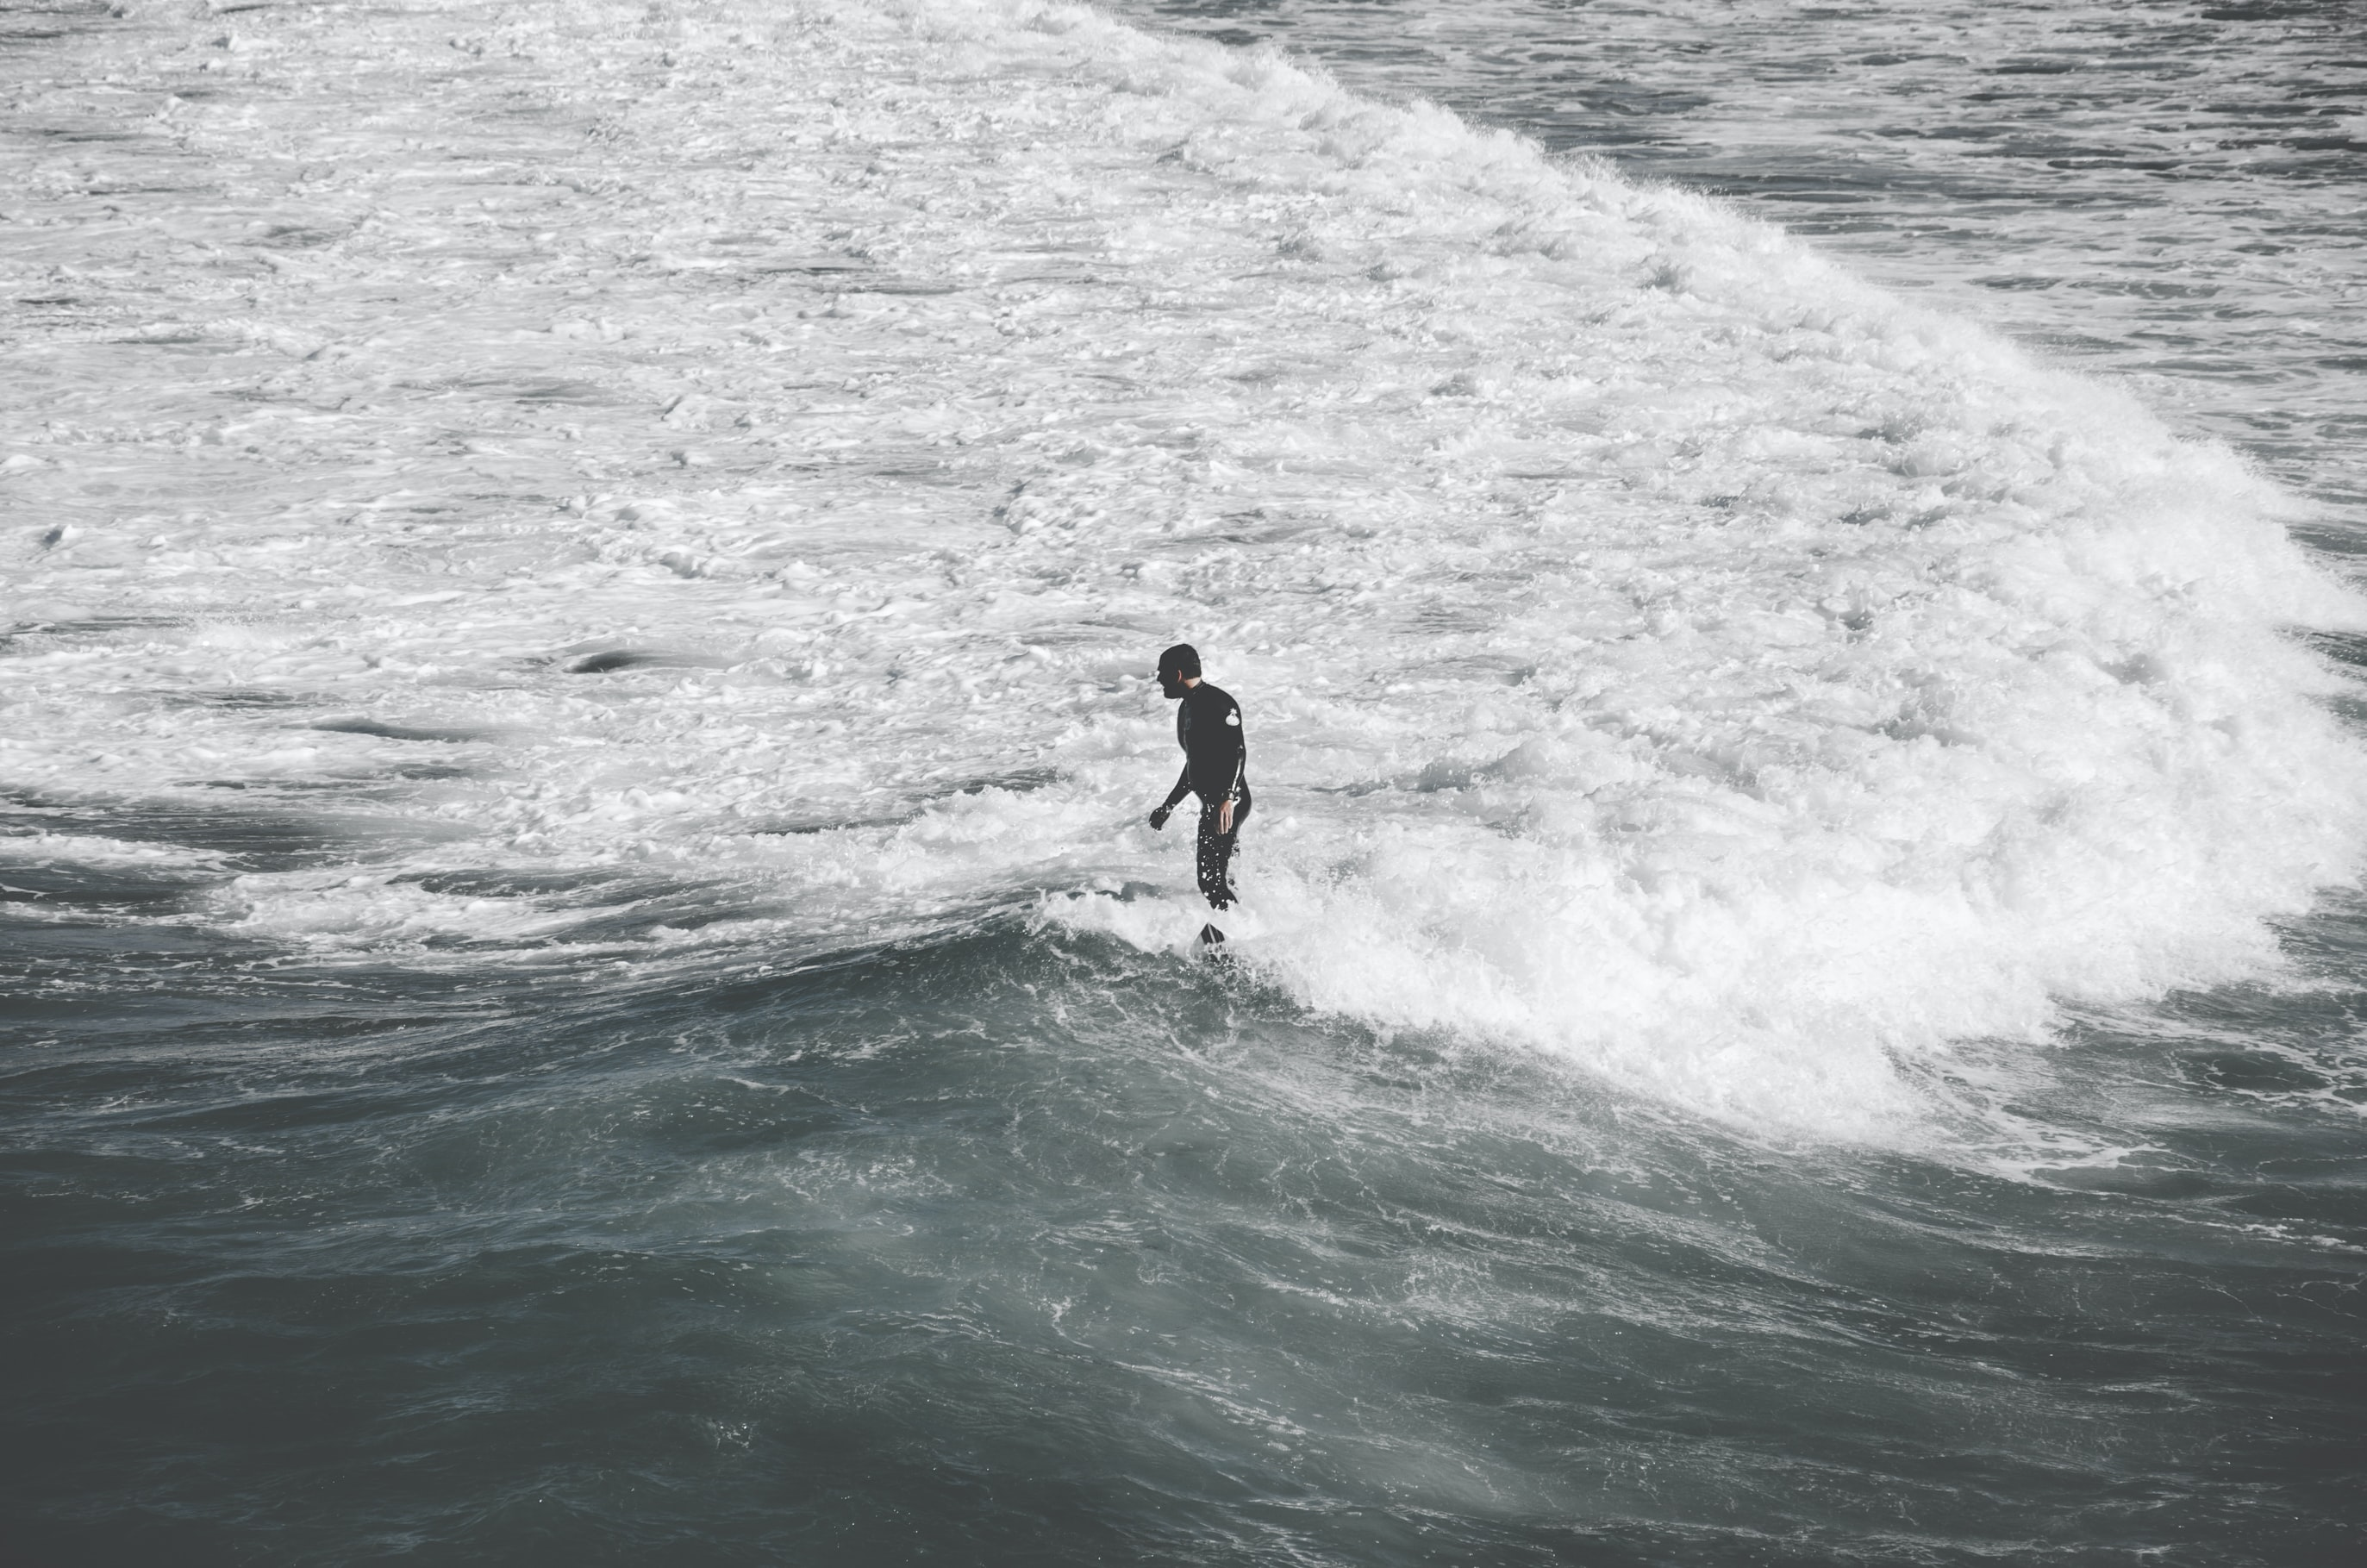 Person standing in the ocean shallow water waves